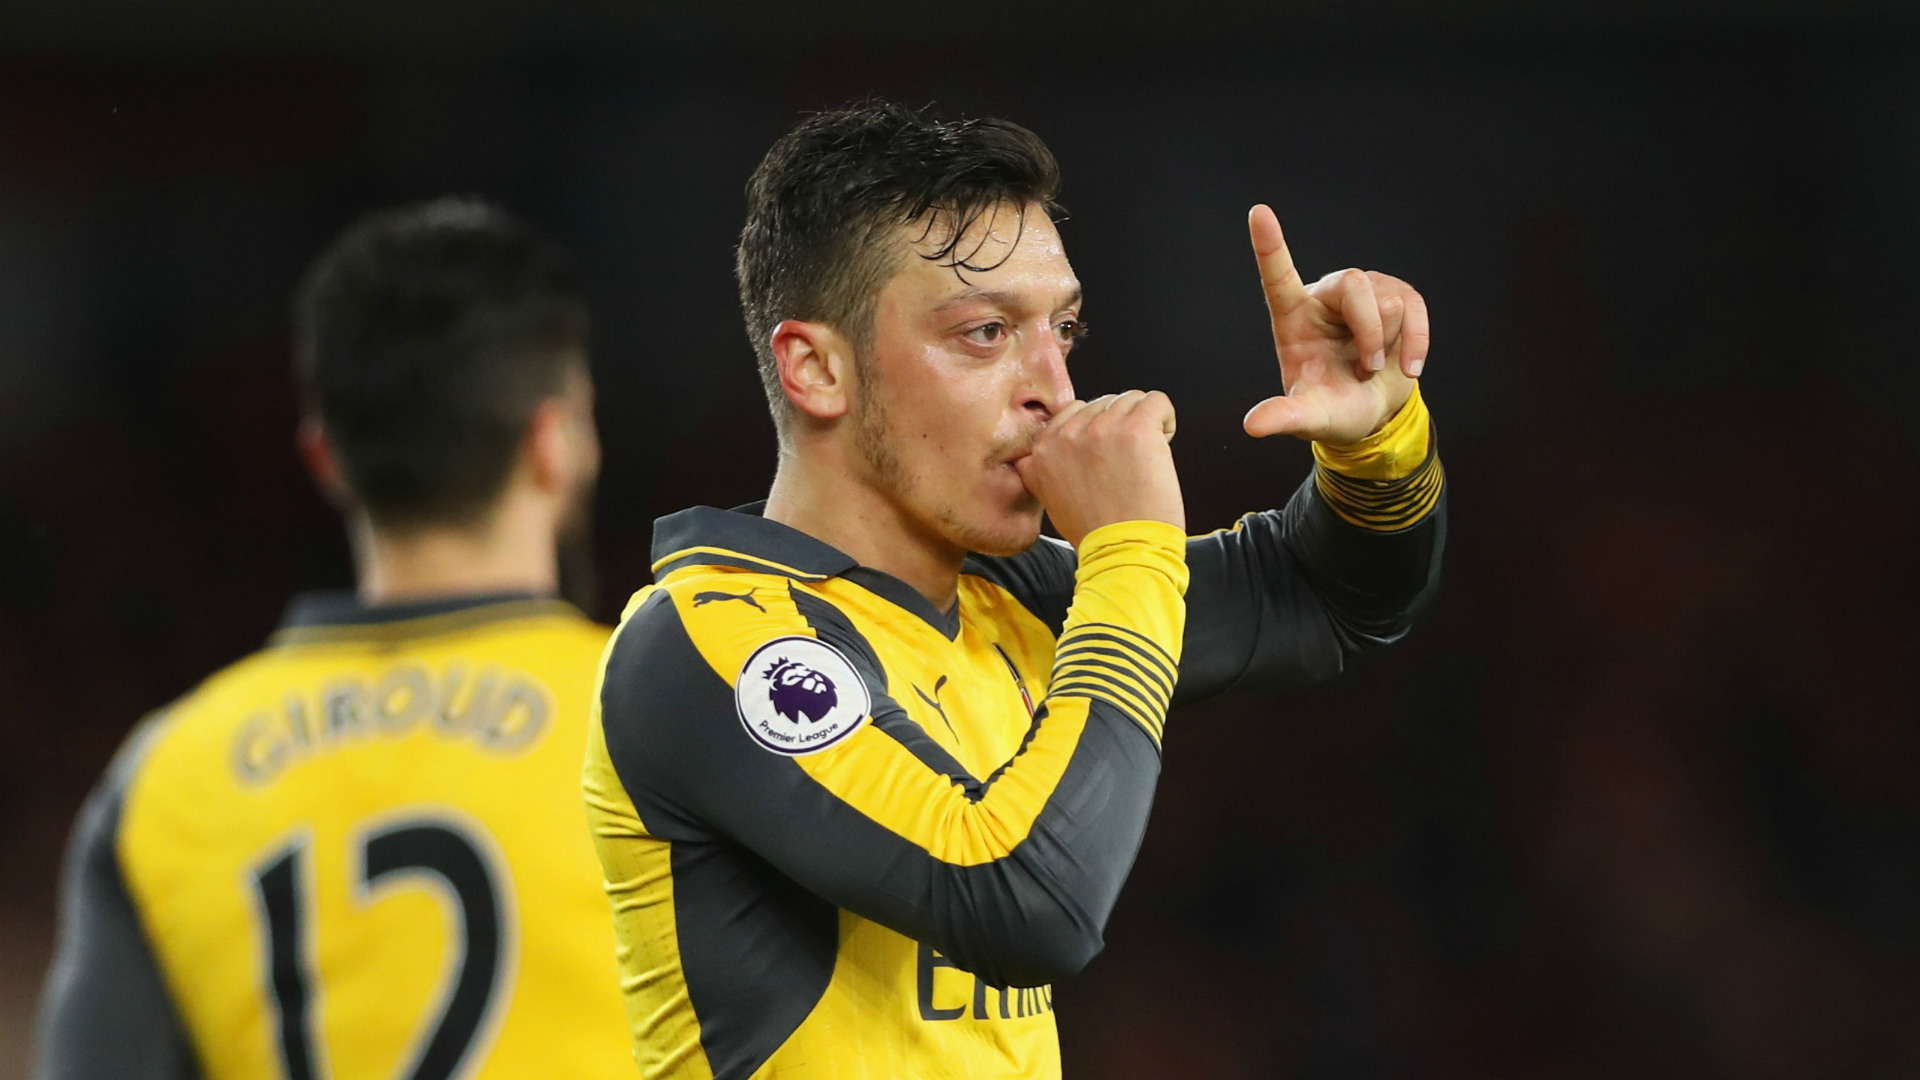 'Wenger stays, Alexis may go, Ozil must improve' - Henry ...